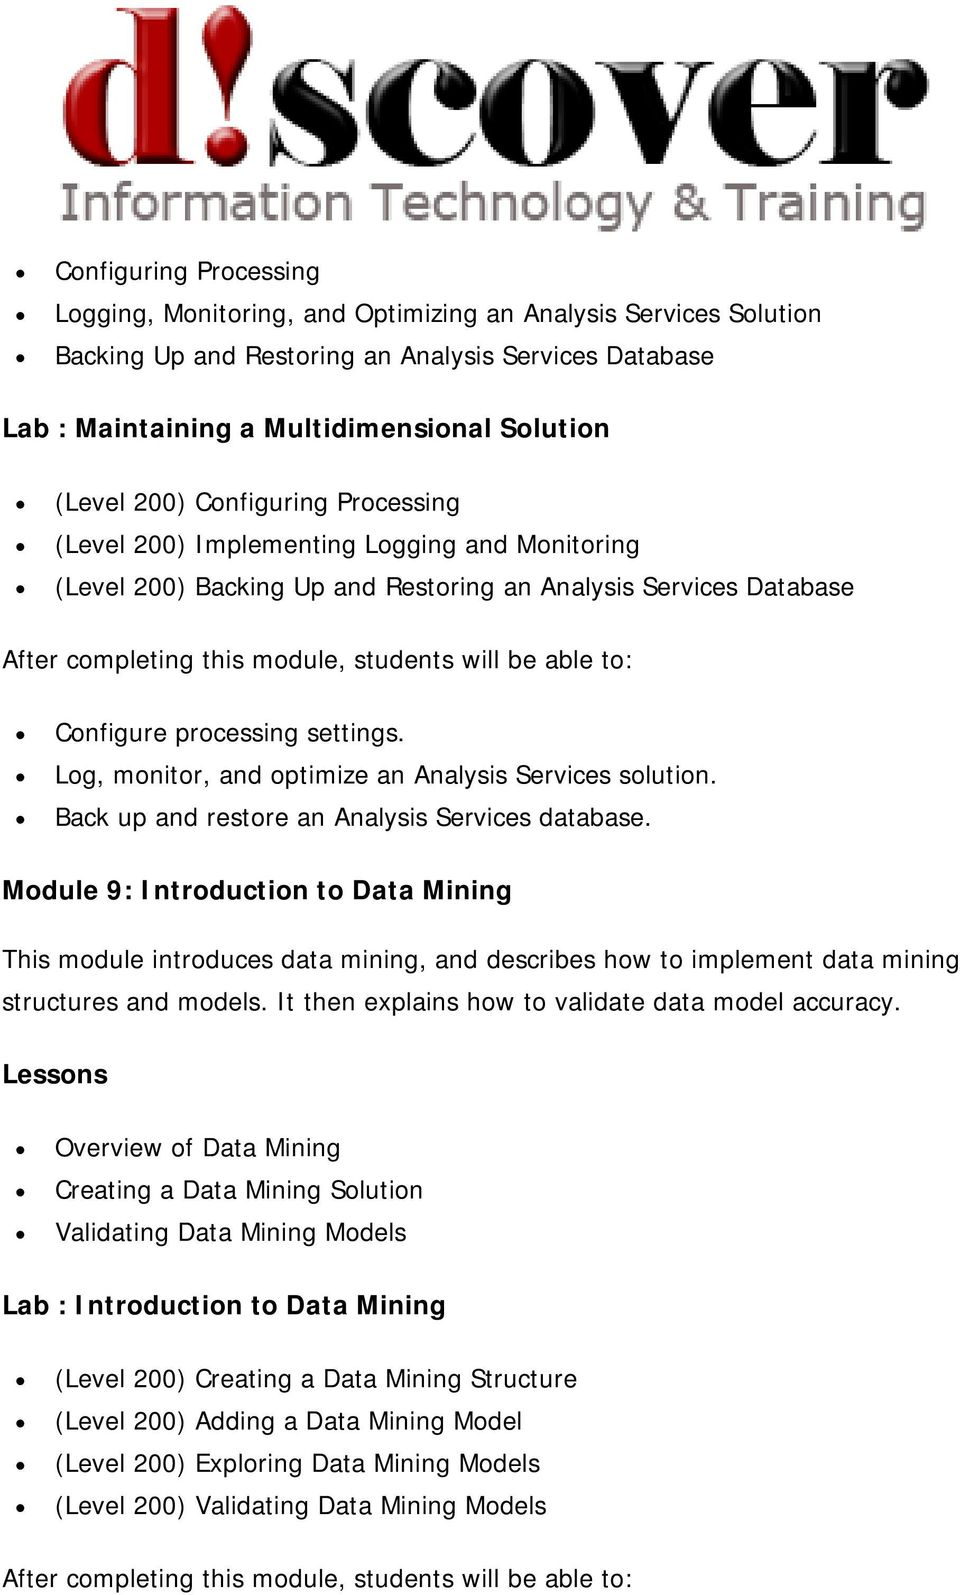 Log, monitor, and optimize an Analysis Services solution. Back up and restore an Analysis Services database.